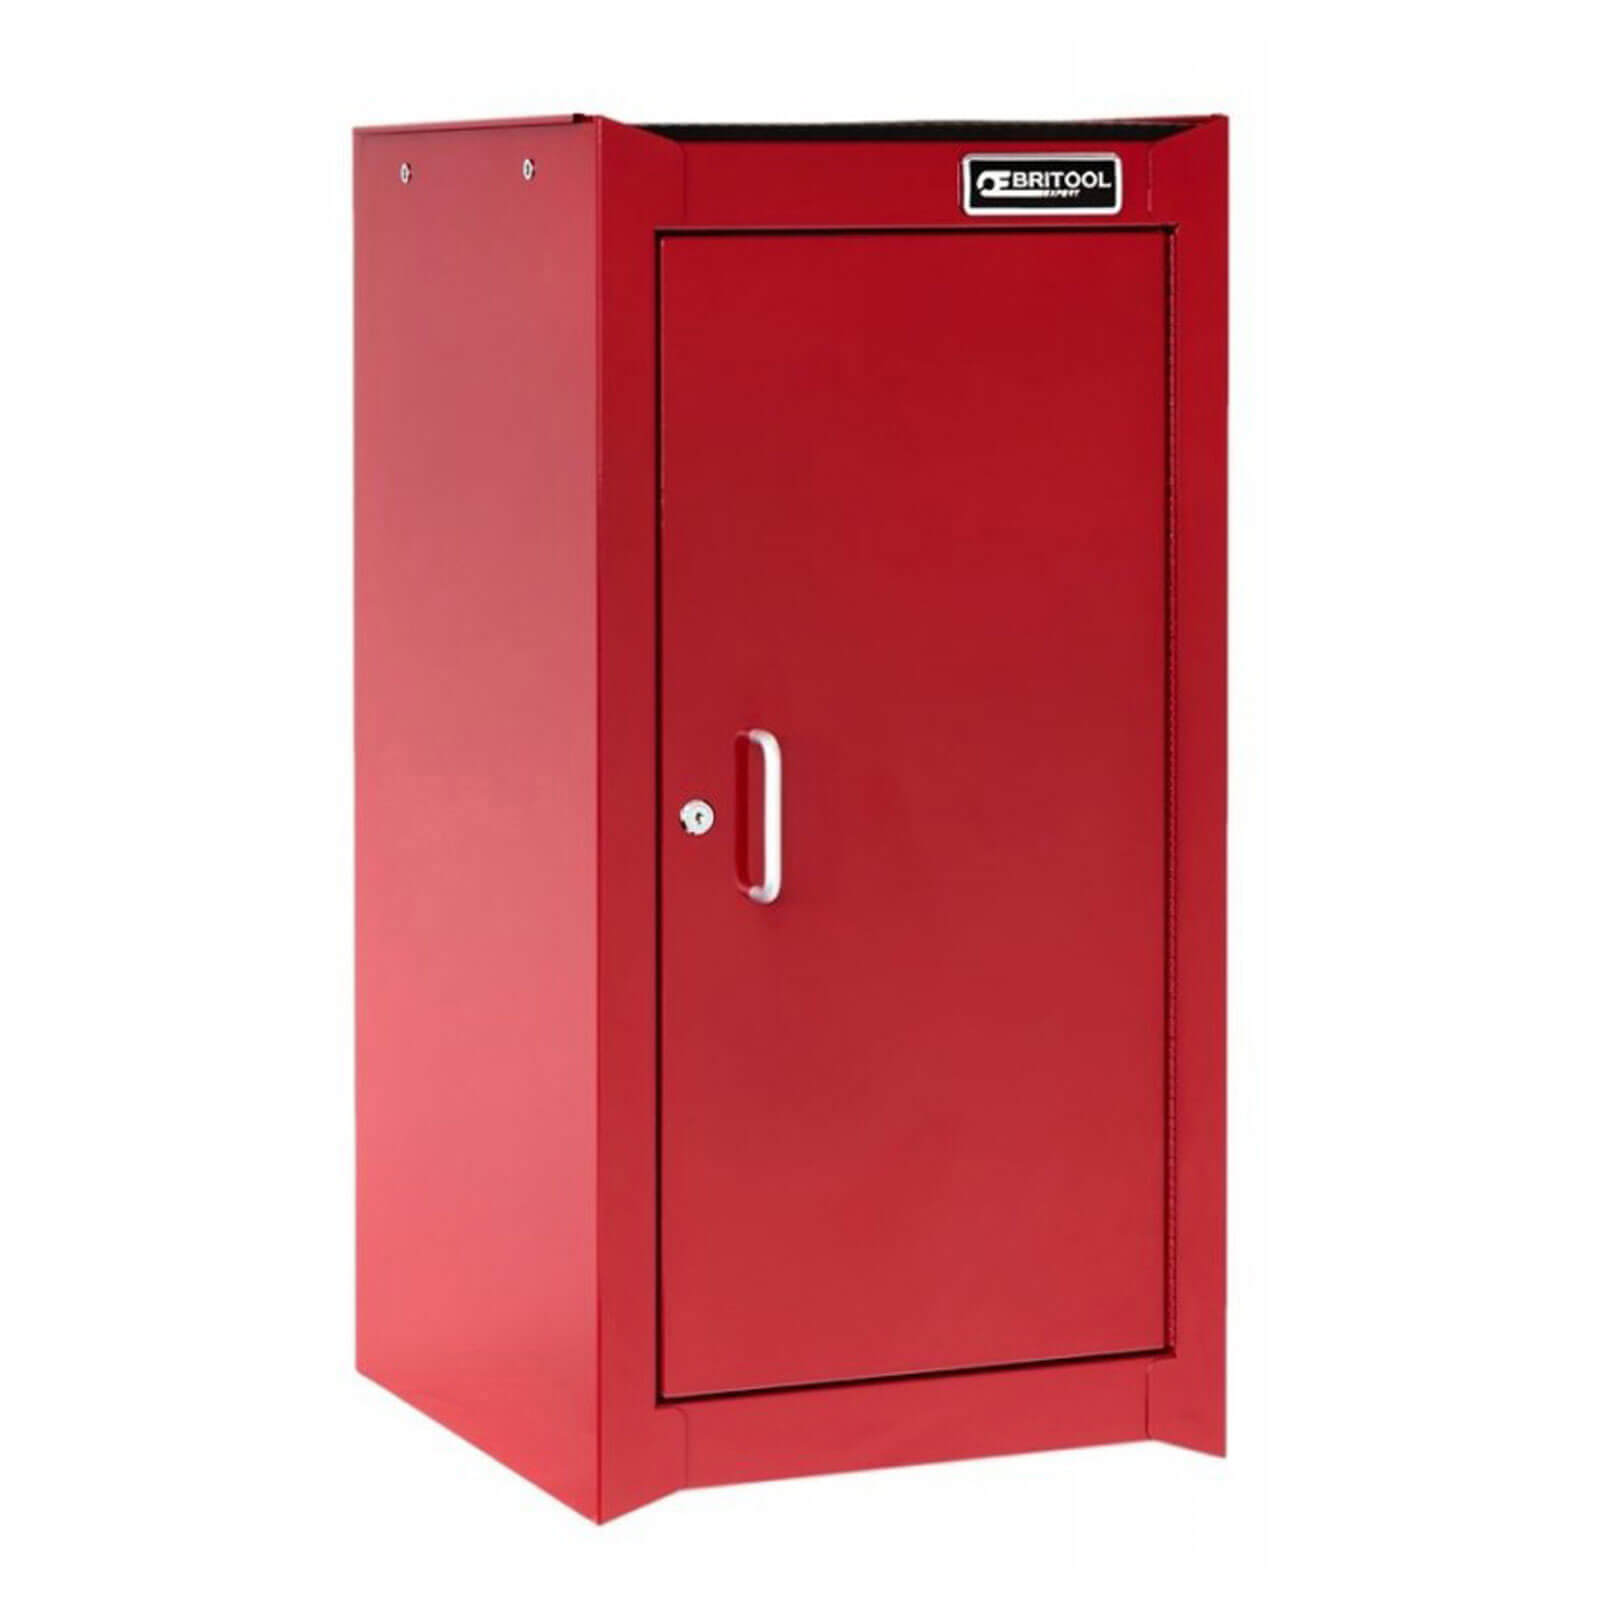 Image of Britool Heavy Duty Lockable Tool Cabinet Red